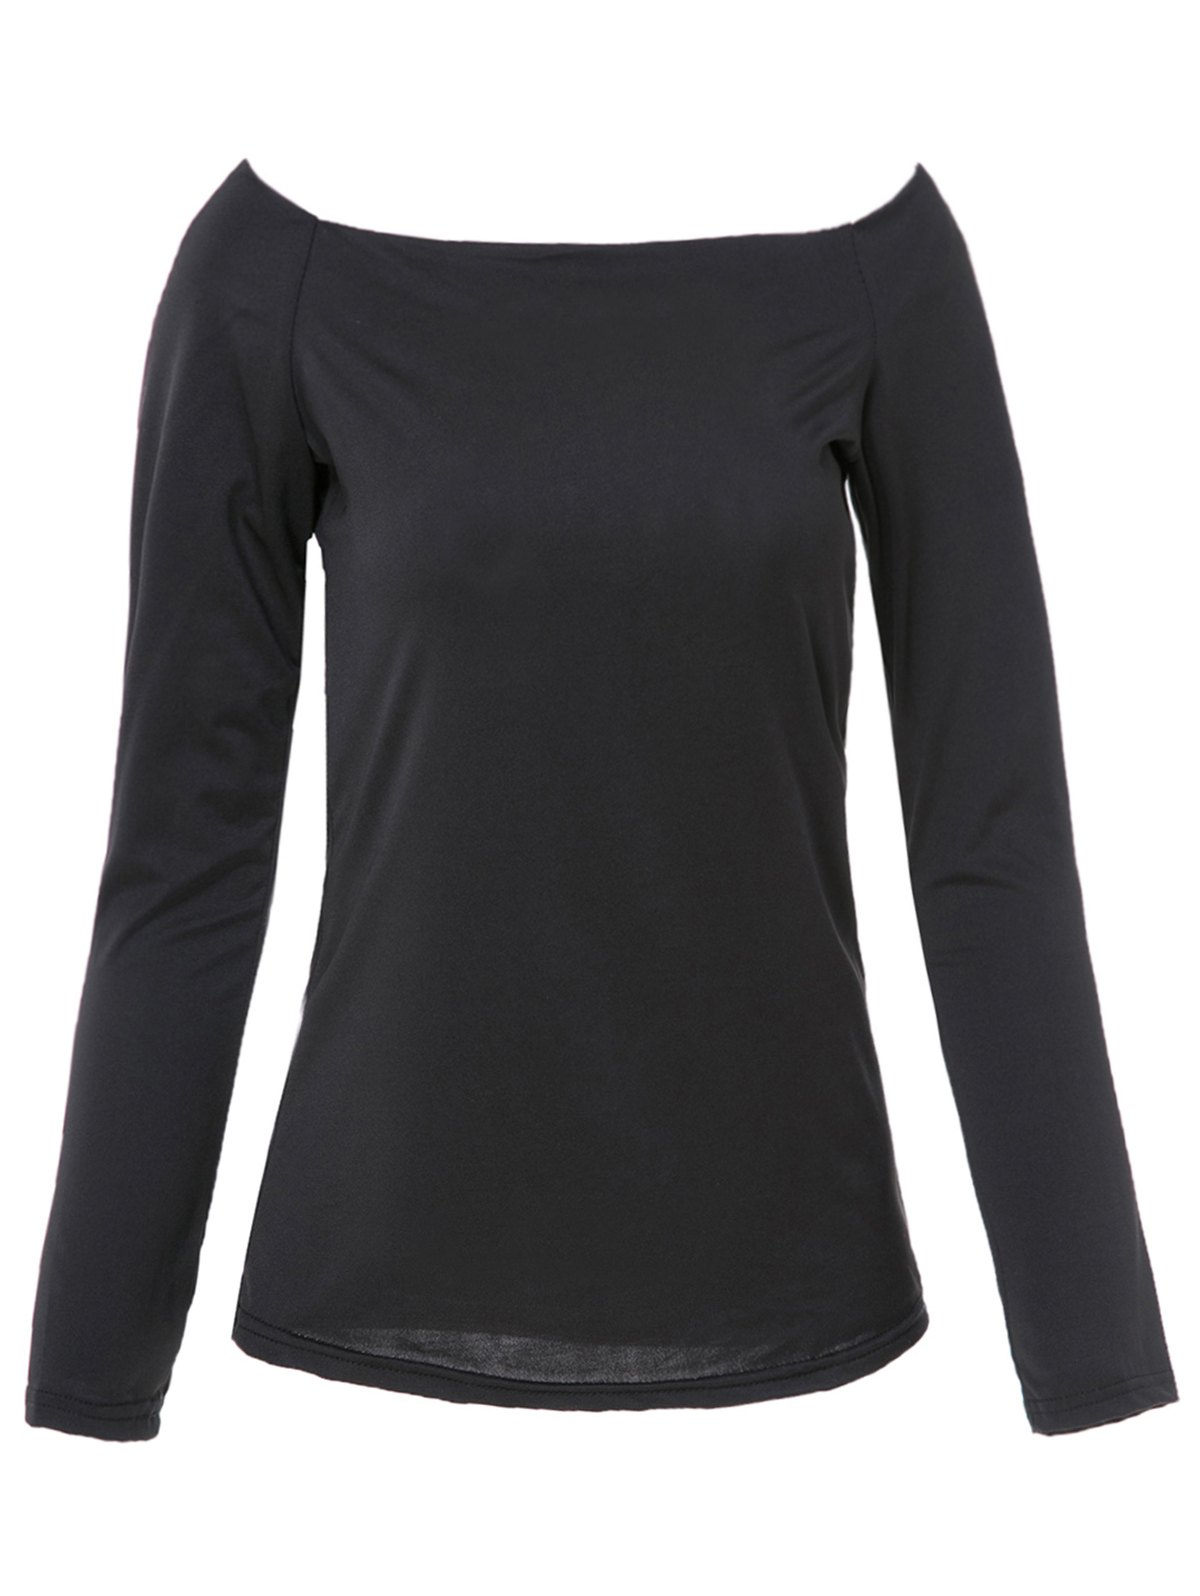 Trendy Solid Color Off-The-Shoulder Bodycon T-Shirt For Women - BLACK S